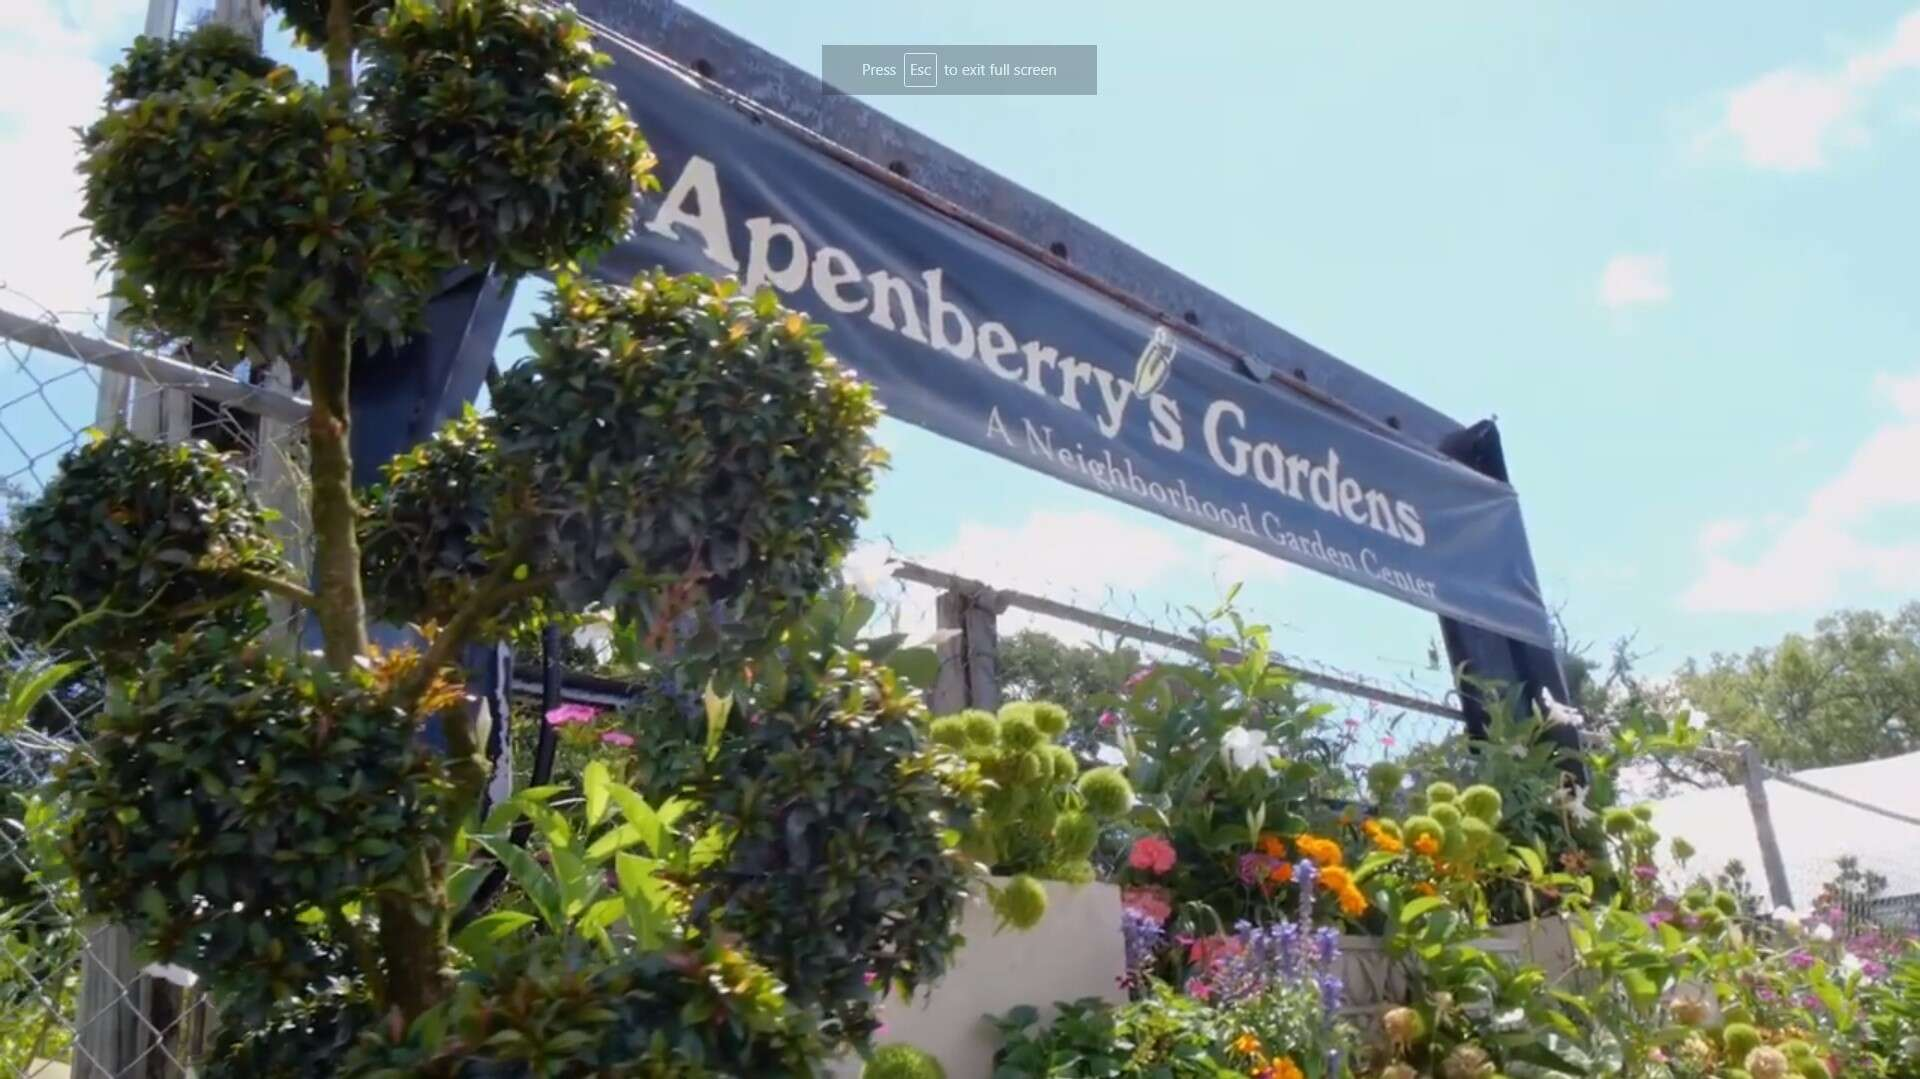 Appenberry's Gardens: A Proven Winners Store Within A Store // Proven Winners